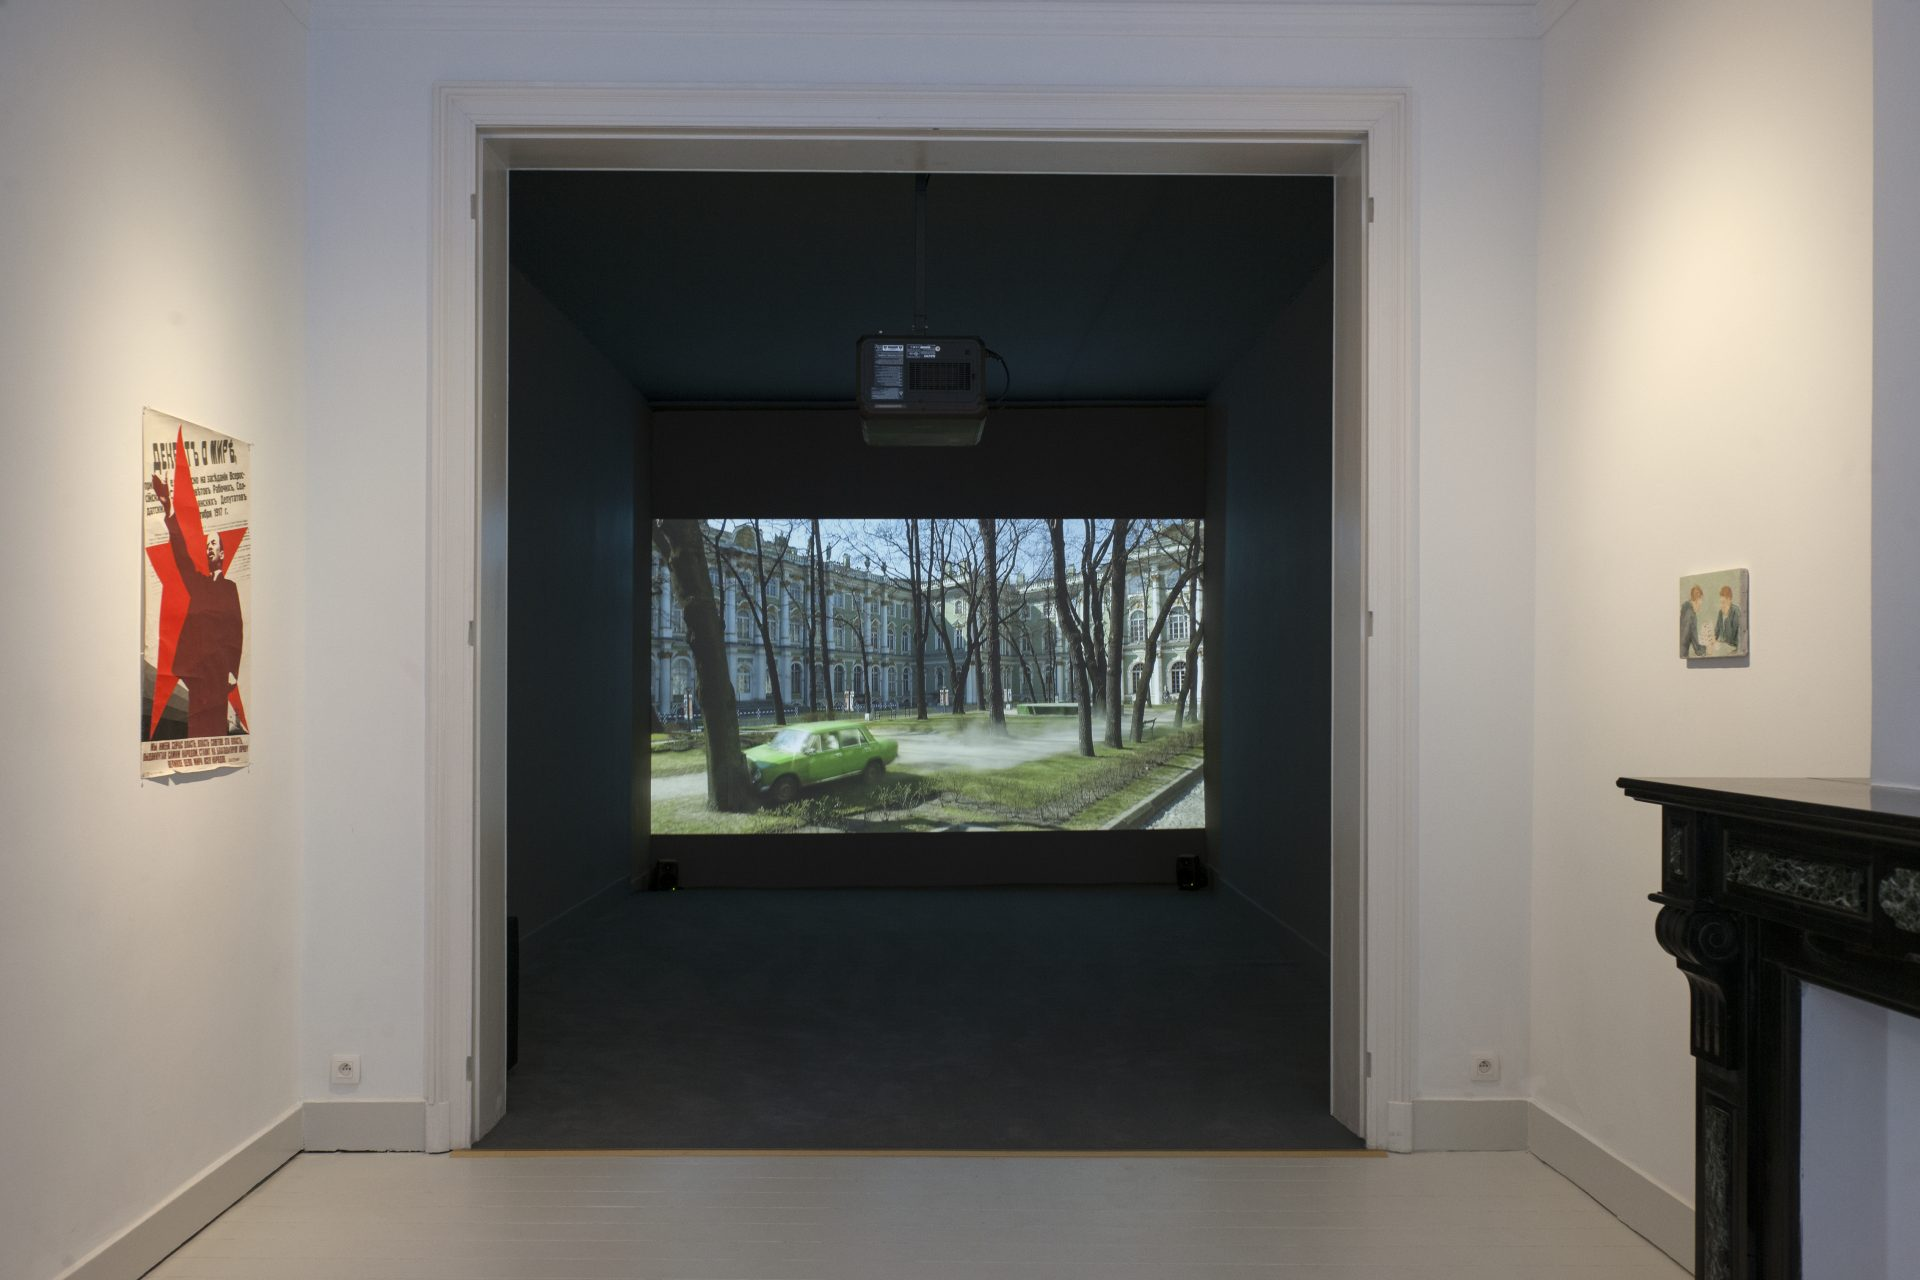 Francis Alys, installation view at Jan Mot, 2017